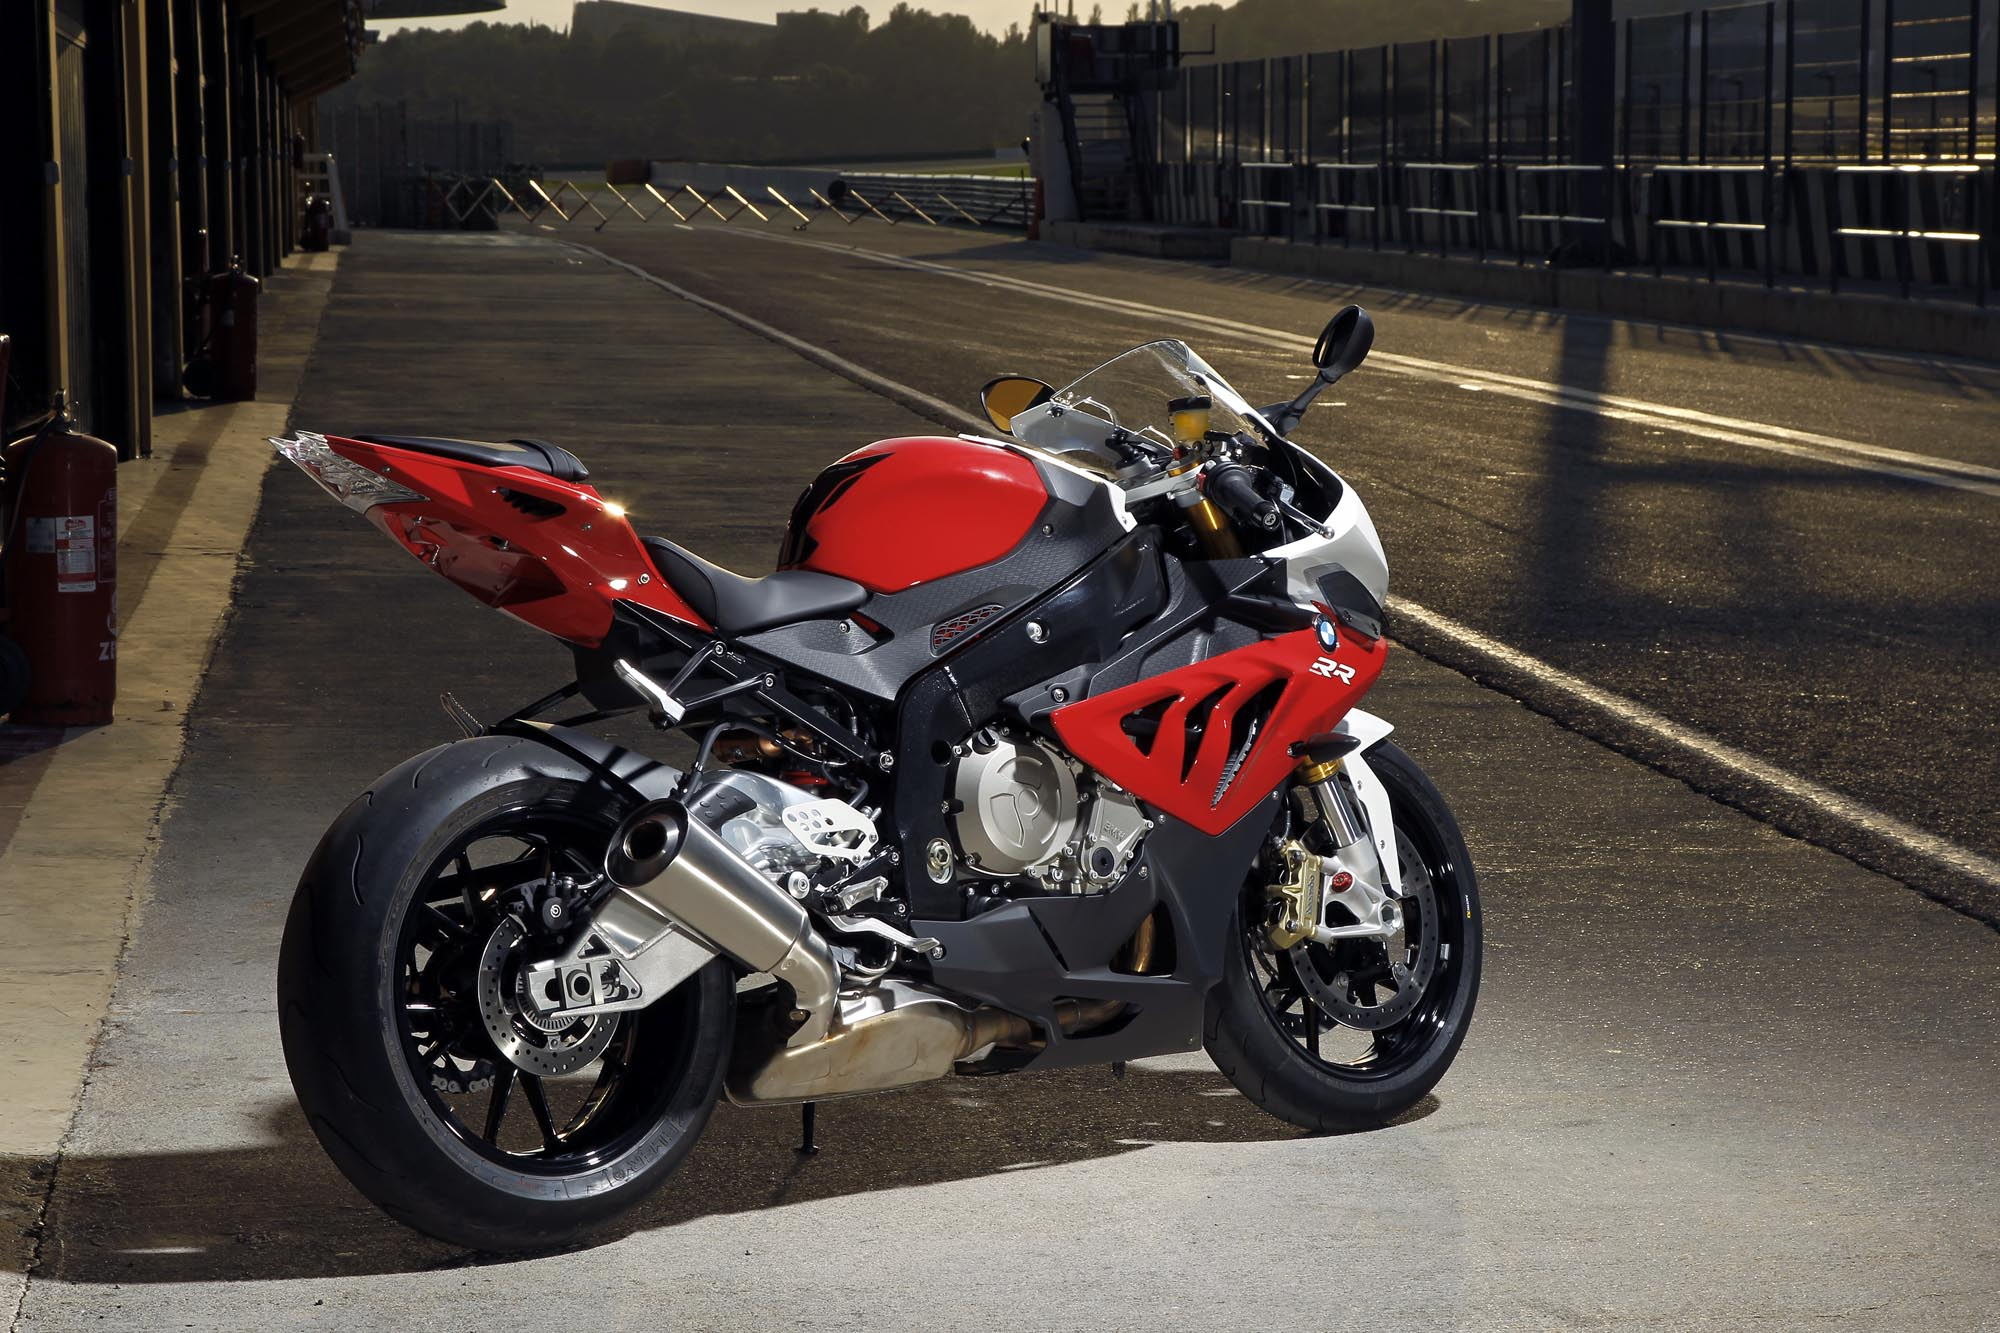 Permalink to bmw usa motorcycles pricing